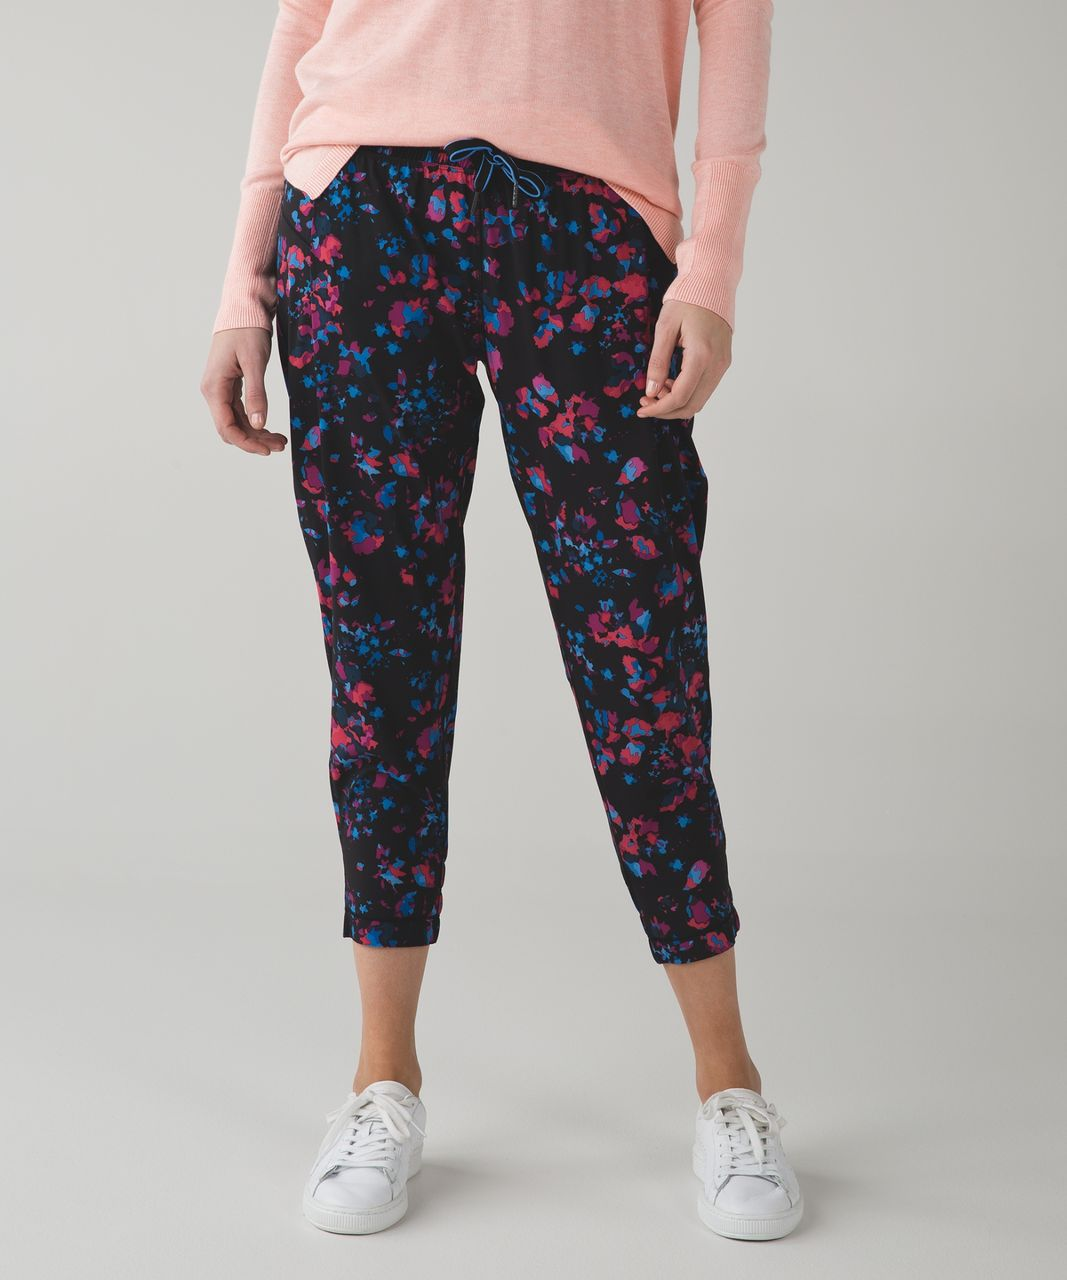 Lululemon Stretch It Out Crop - Dandy Digie Multi